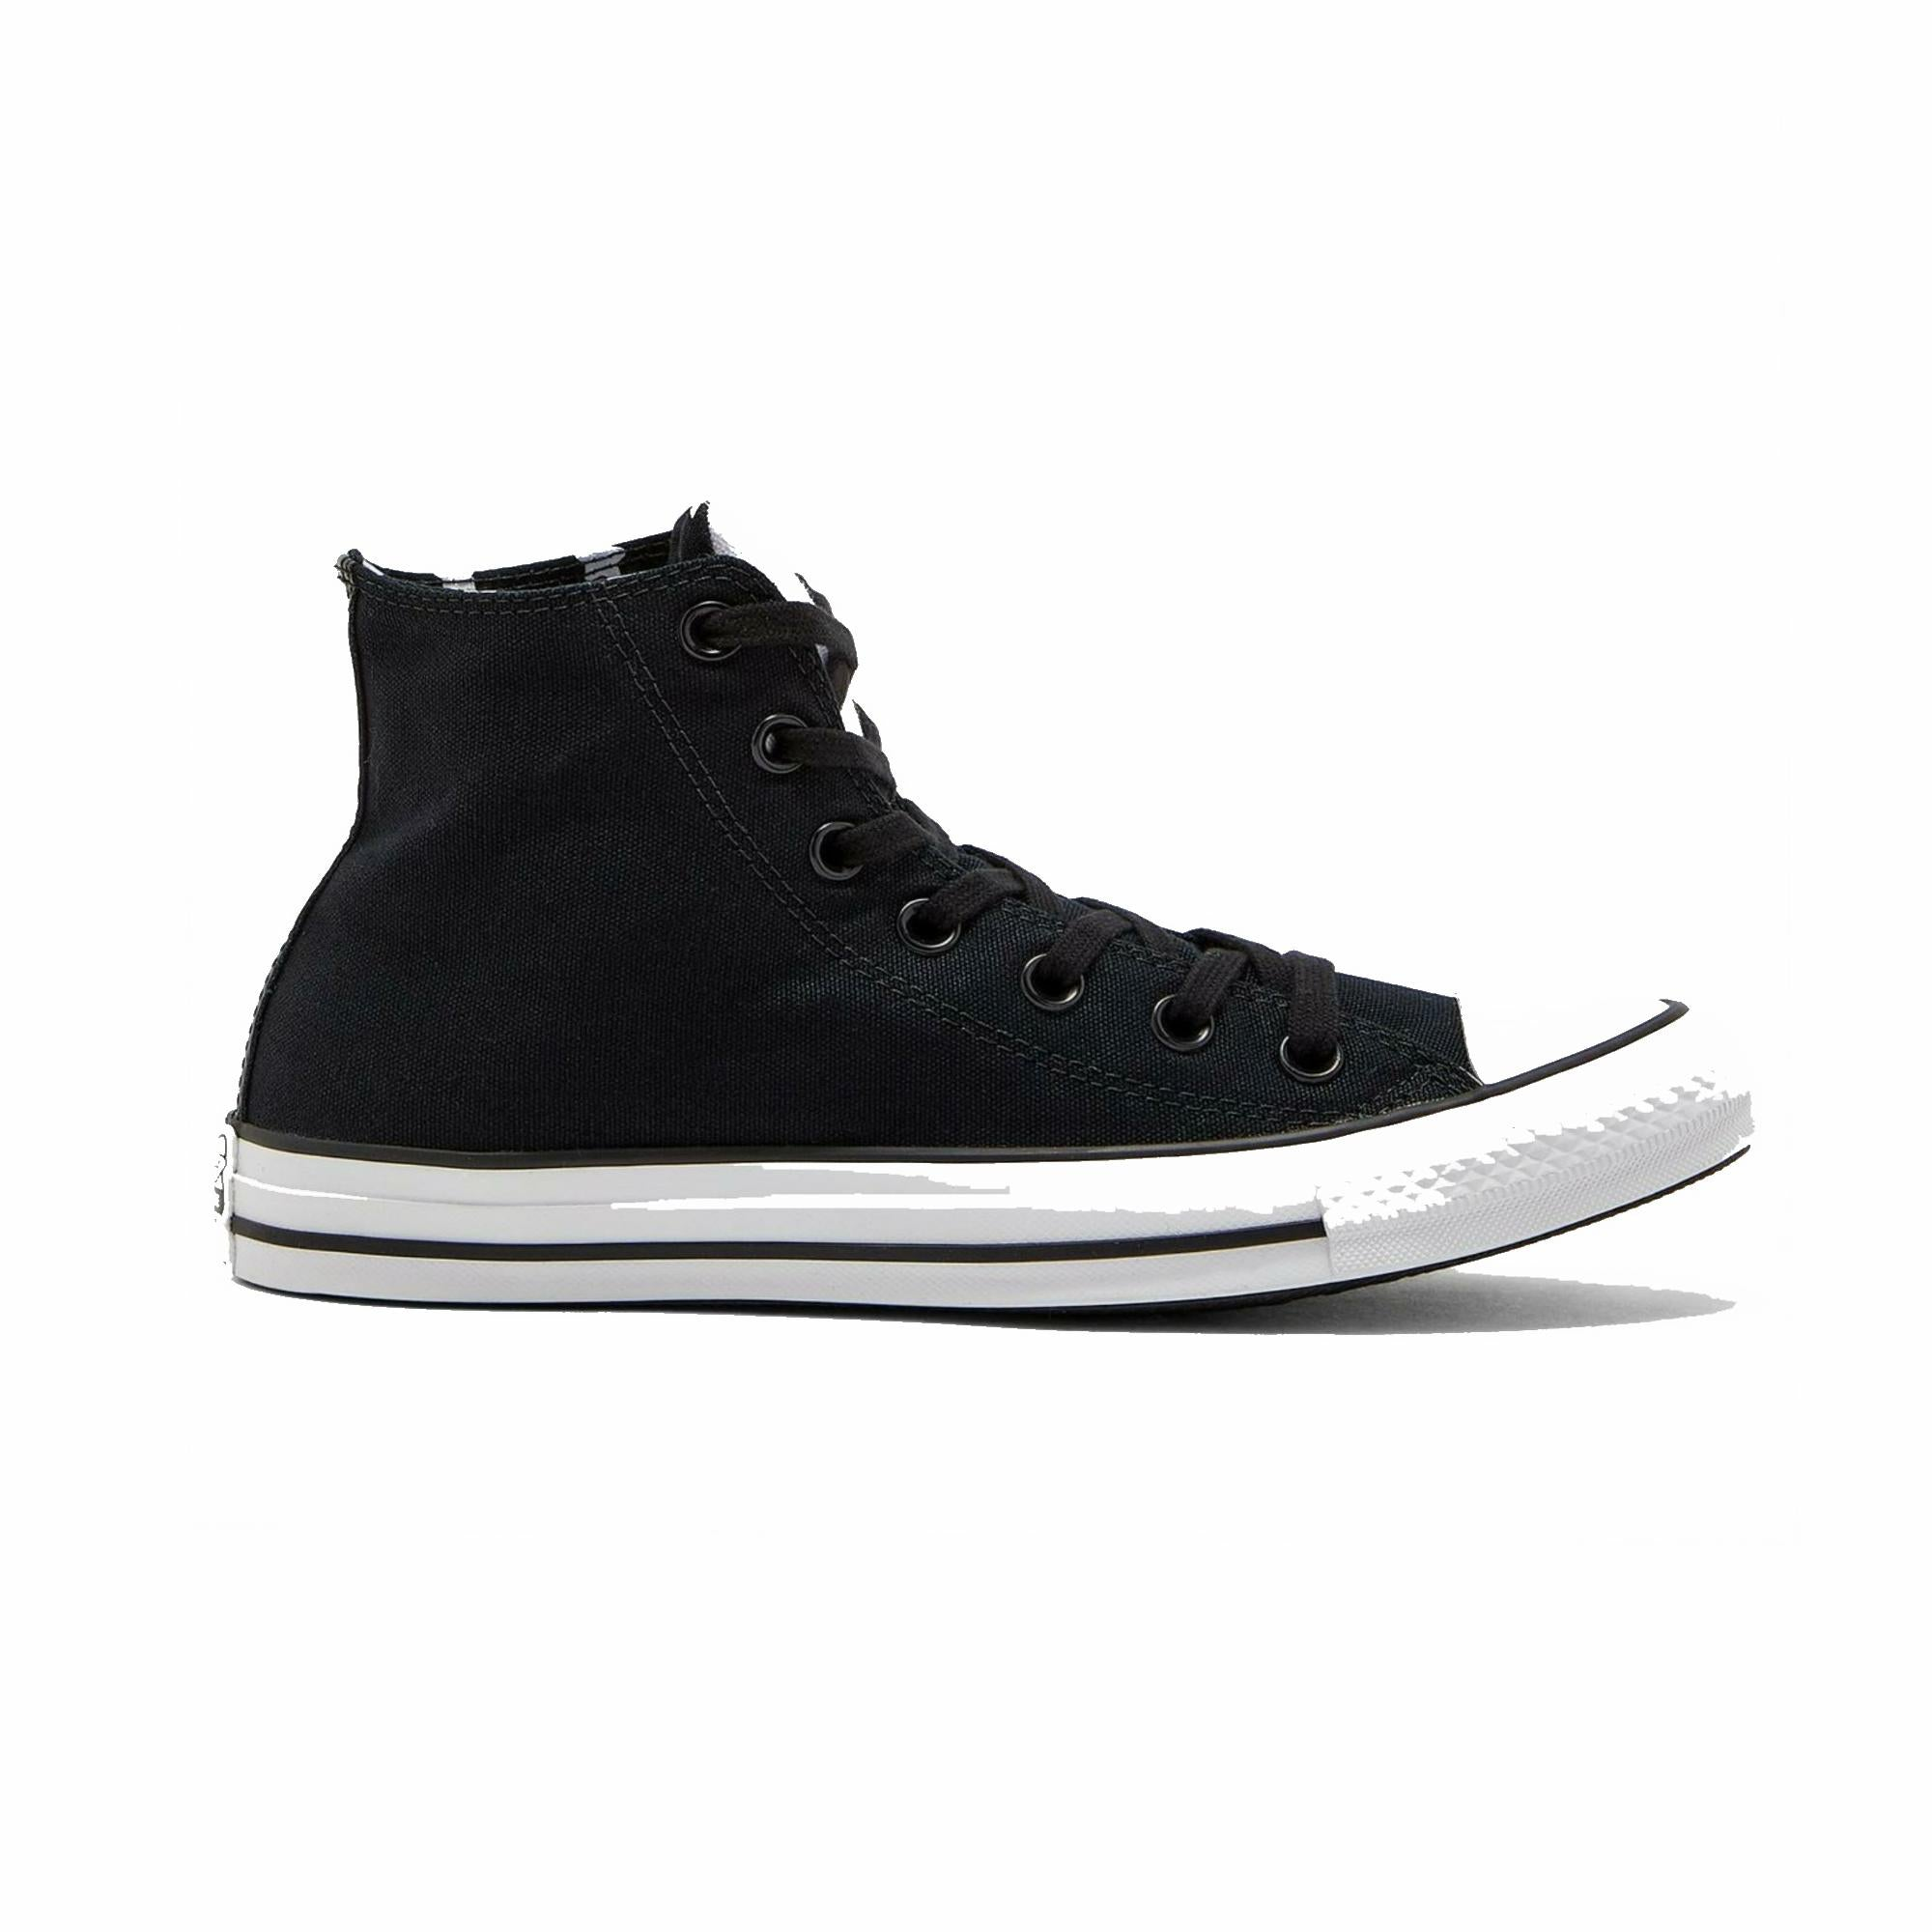 CTAS HI BLACK/FIERY RED/WHITE 163910C